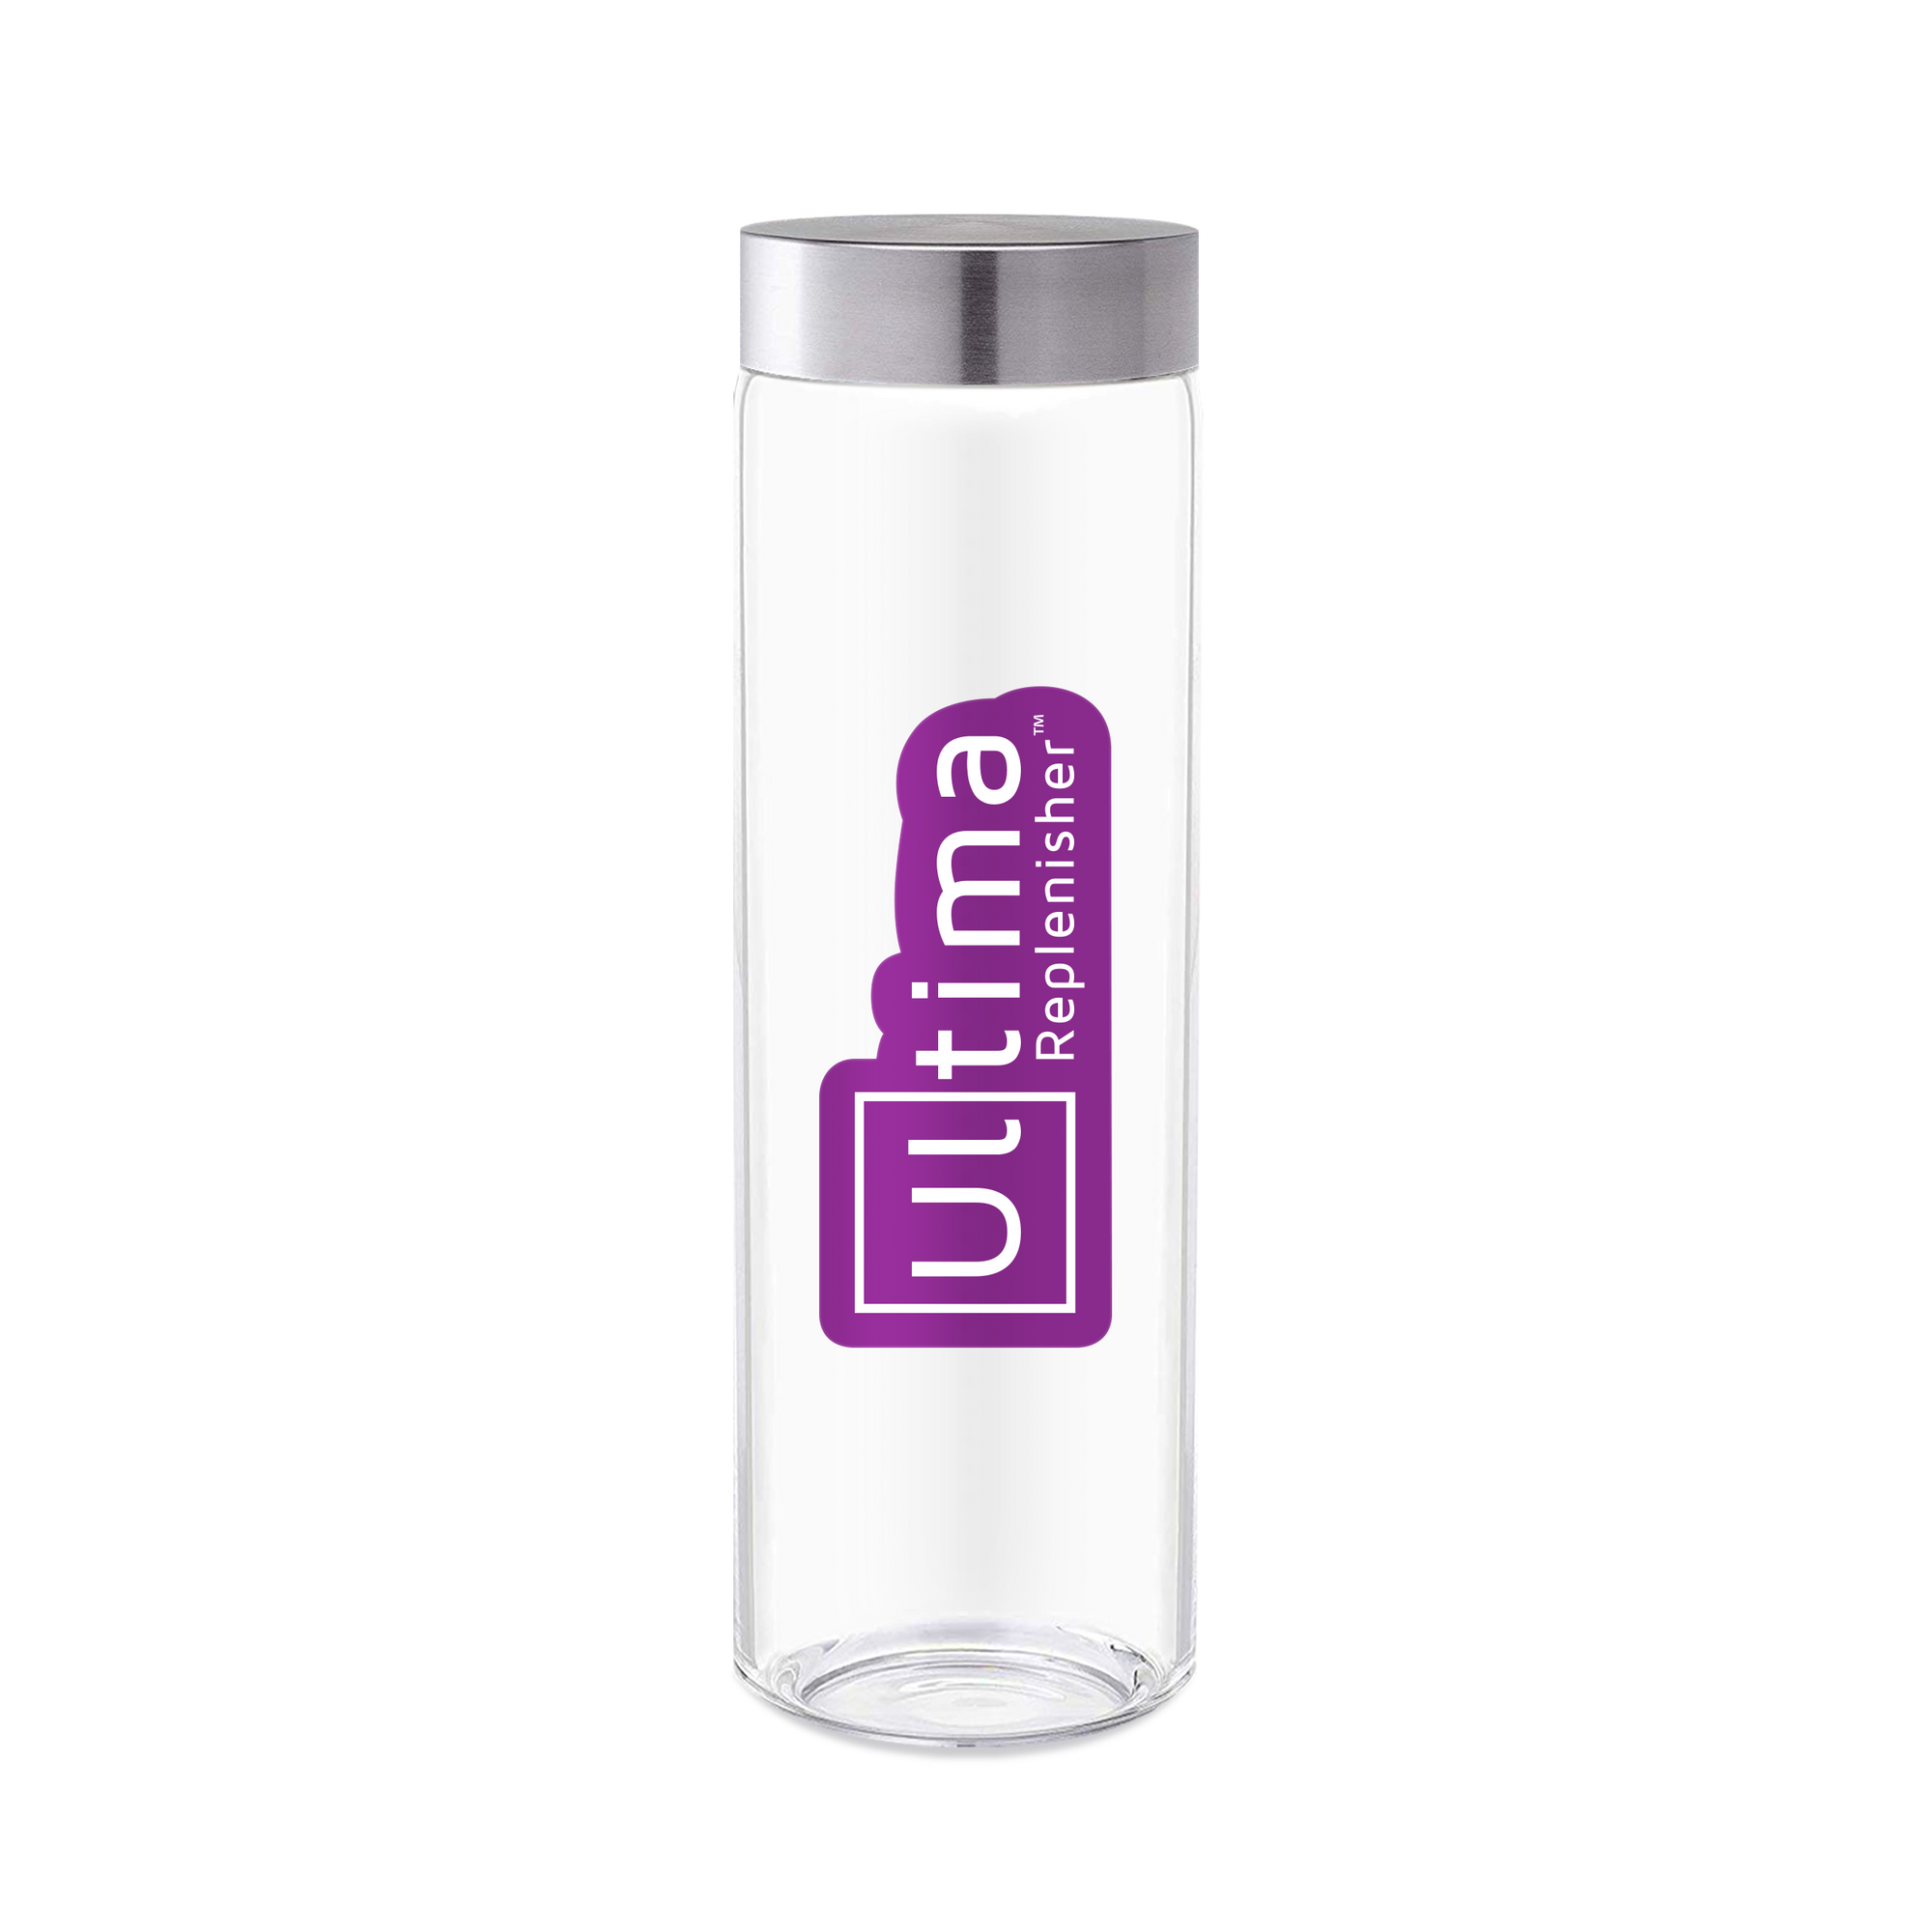 Ultima Replenisher Electrolyte Hydration Powder Accessories Water Bottle